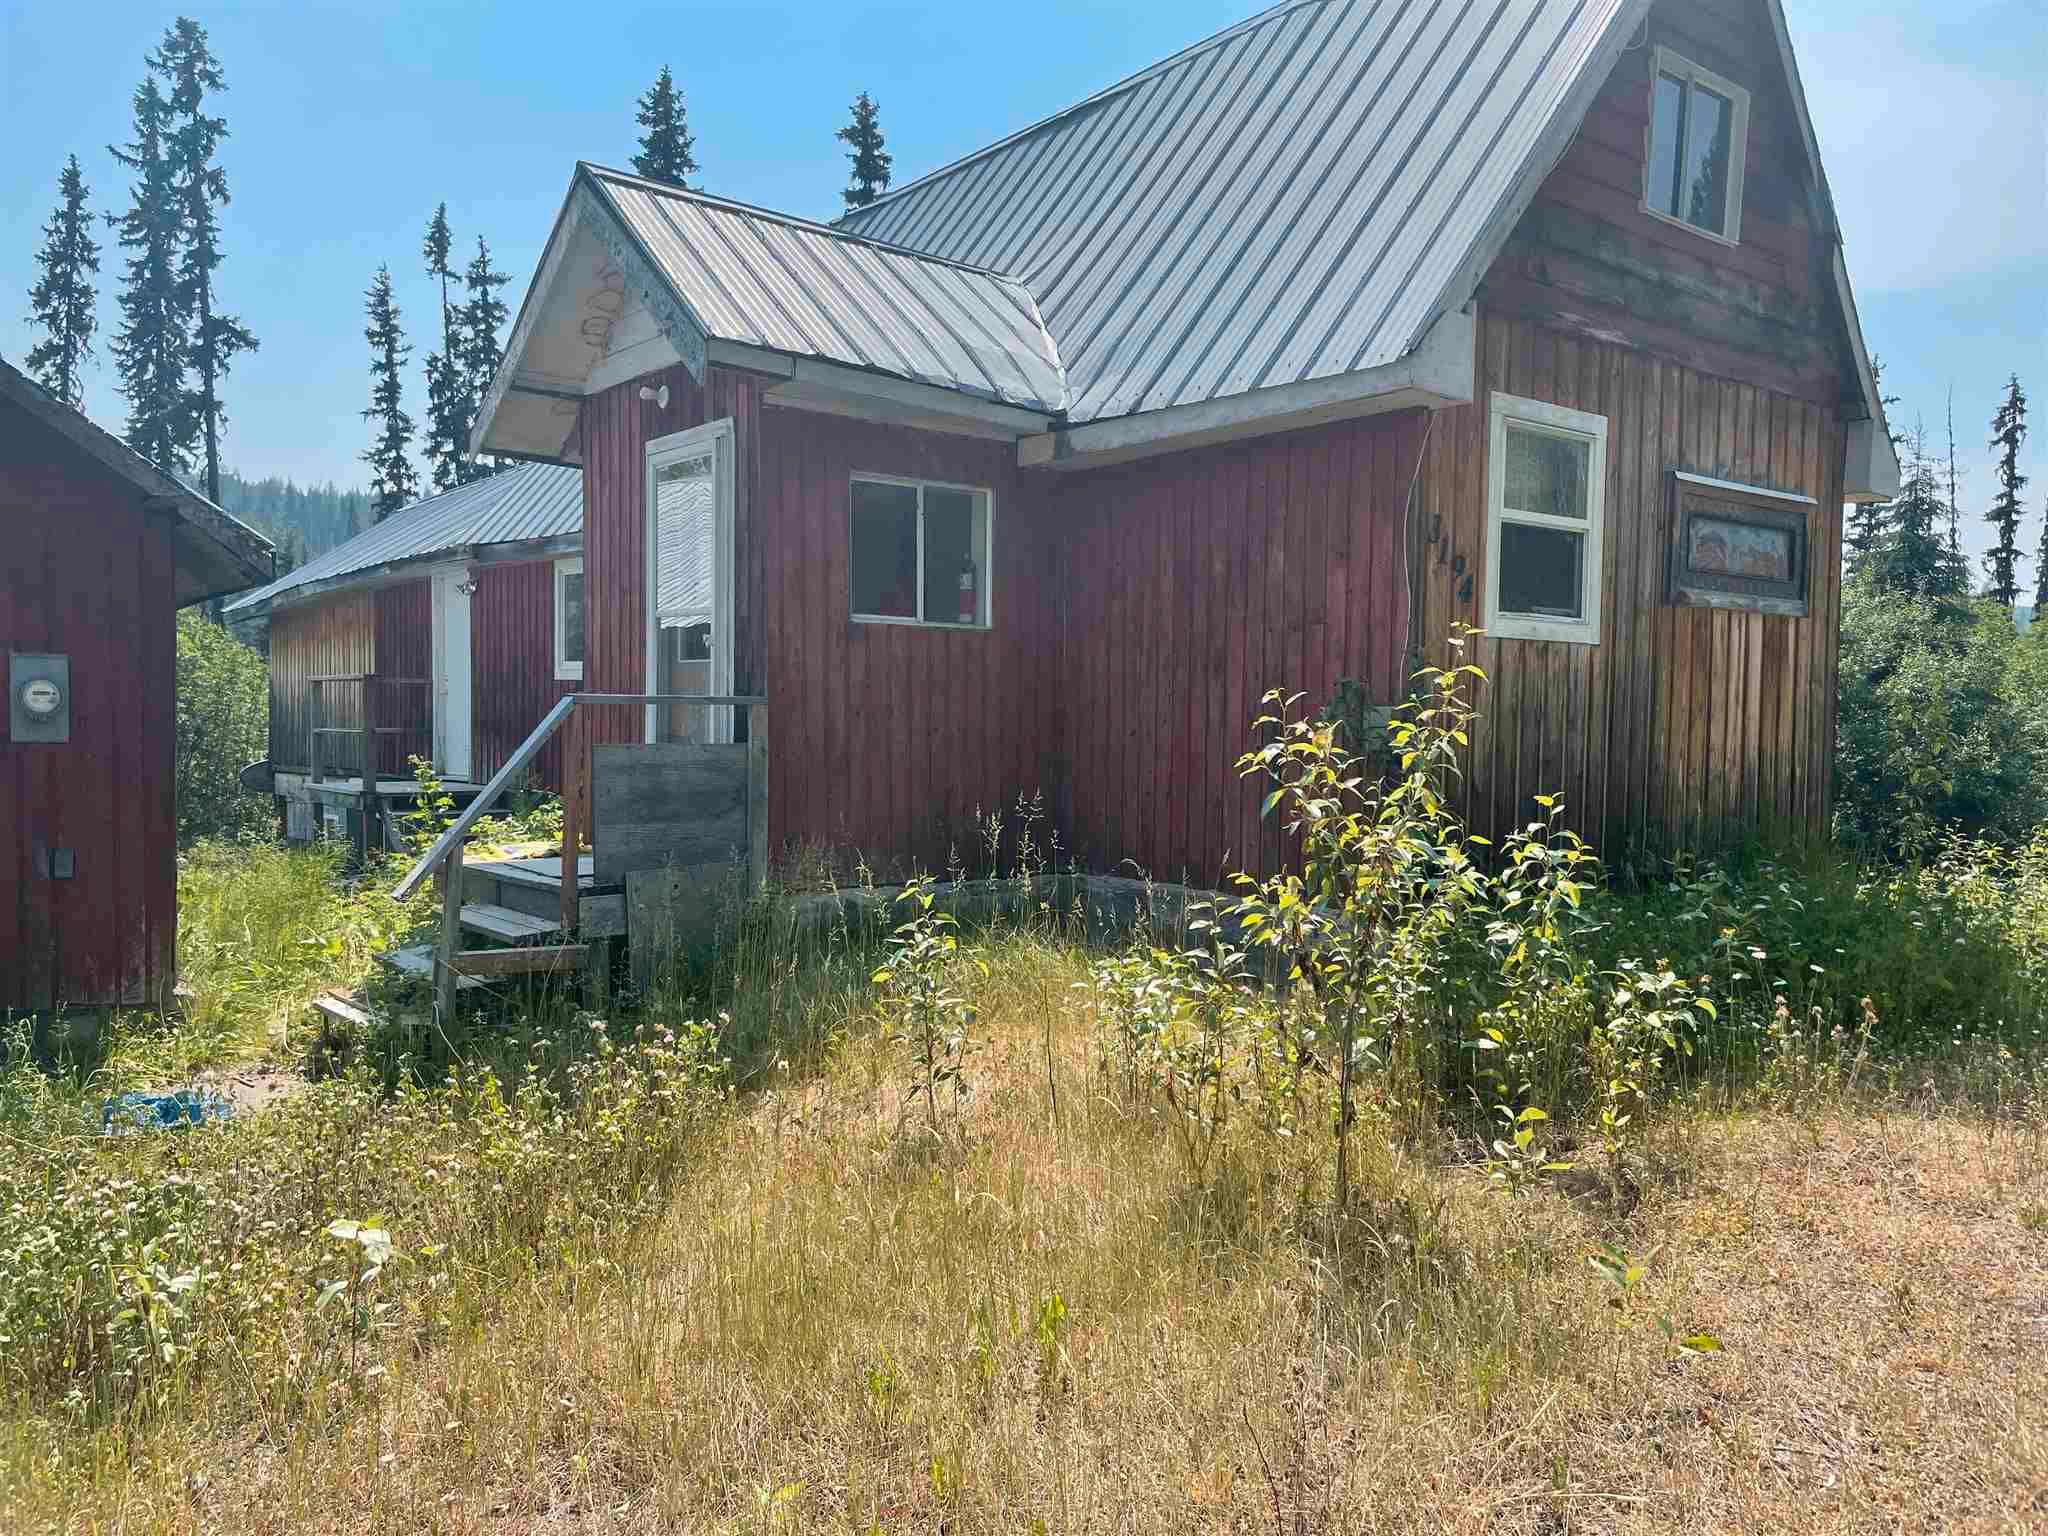 Main Photo: 3194 LITTLE LAKE-QUESNEL RIVER Road: Likely House for sale (Williams Lake (Zone 27))  : MLS®# R2602206